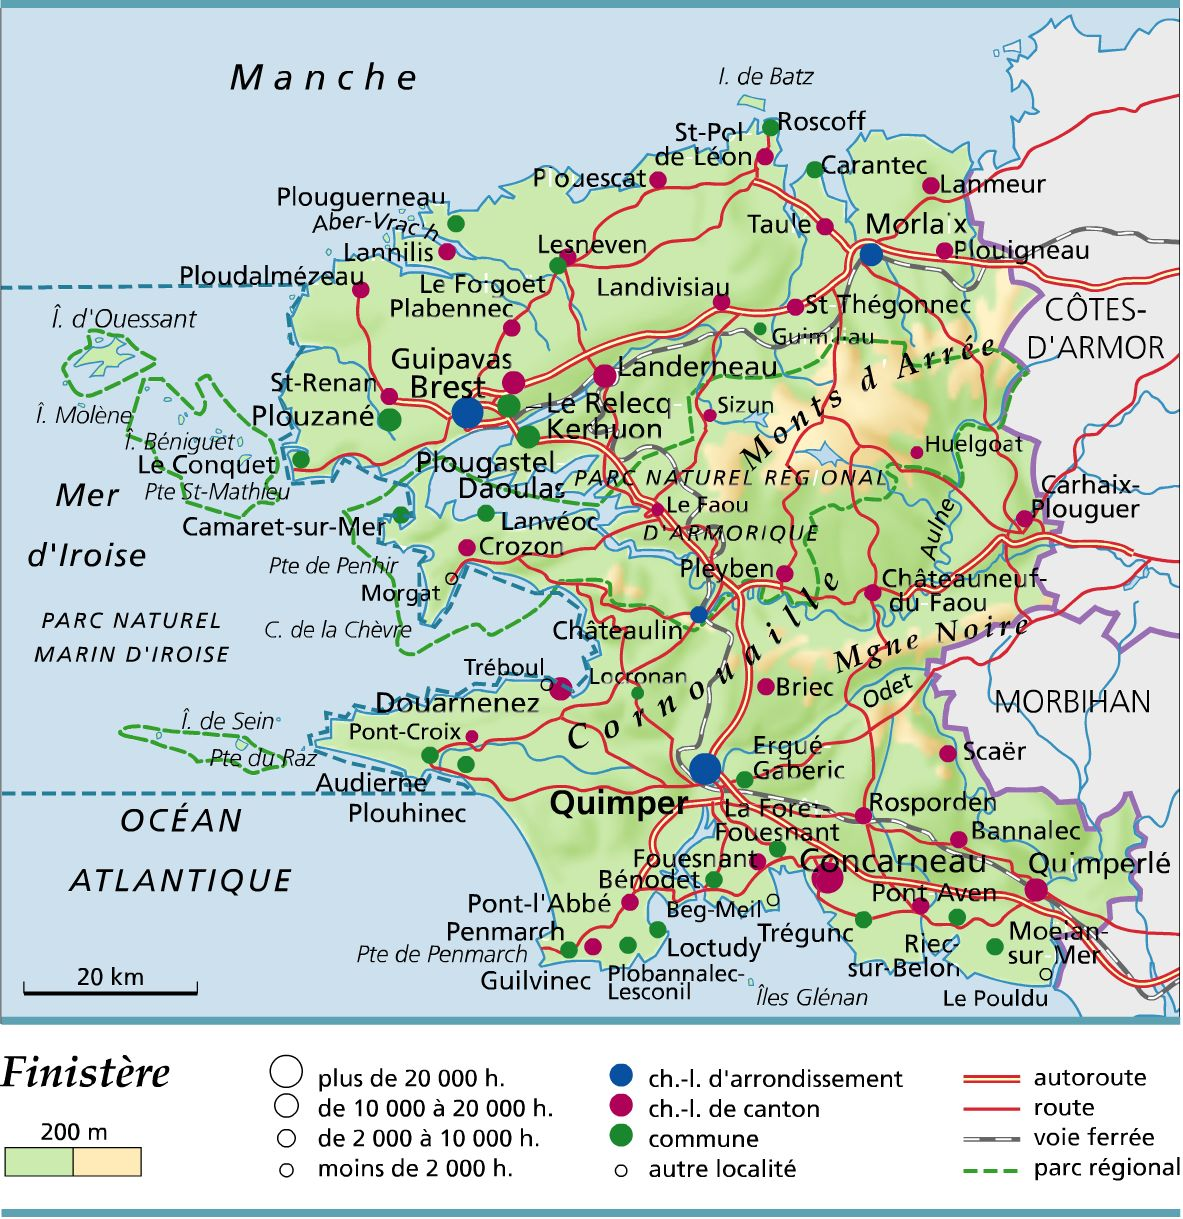 departement du finistere -